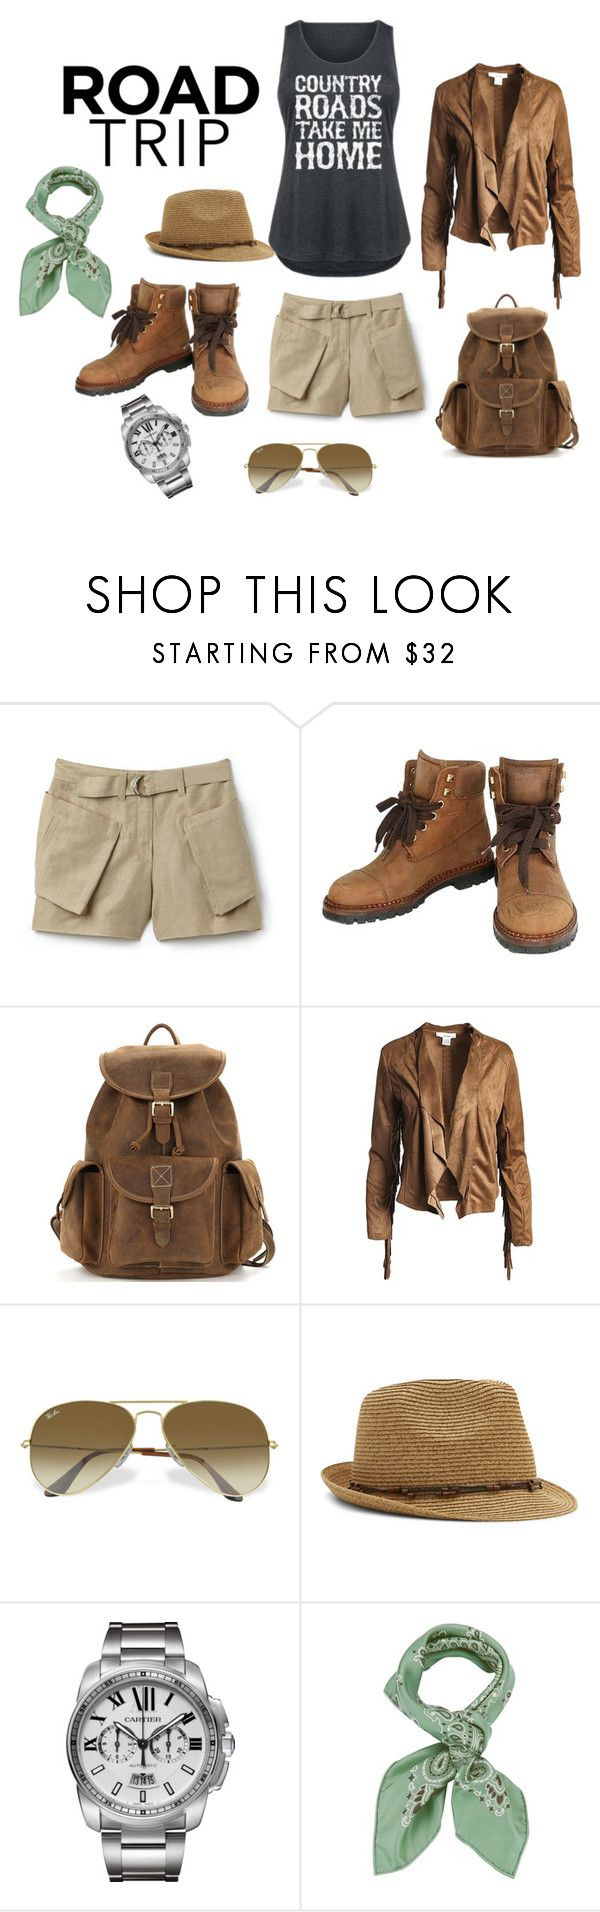 """""""Senza titolo #310"""" by e-cheli ❤ liked on Polyvore featuring Lacoste, Chanel, Sans Souci, Ray-Ban, Nine West, Manipuri, LC Trendz and plus size clothing"""